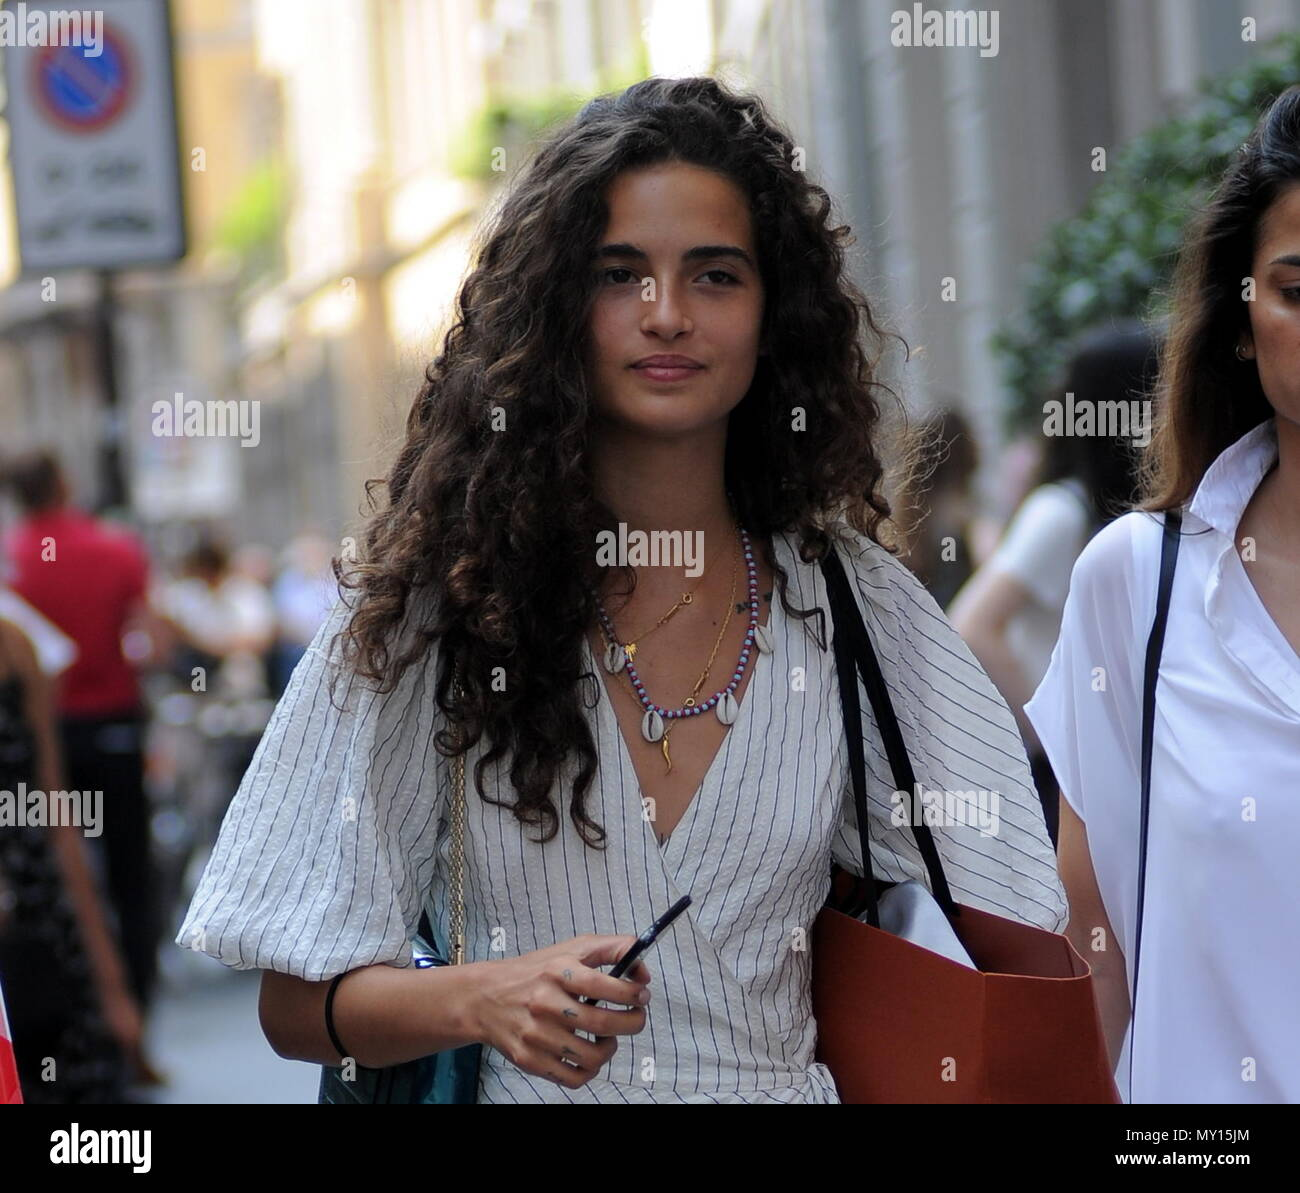 Milan, Chiara Scelsi walks in the center Chiara Scelsi, favorite model by Dolce & Gabbana stylists, walks through the streets of the center with a friend. After shopping in some boutiques, he visits Zanotti's showroom, then takes a stroll down Via Montenapoleone before leaving home. - Stock Image